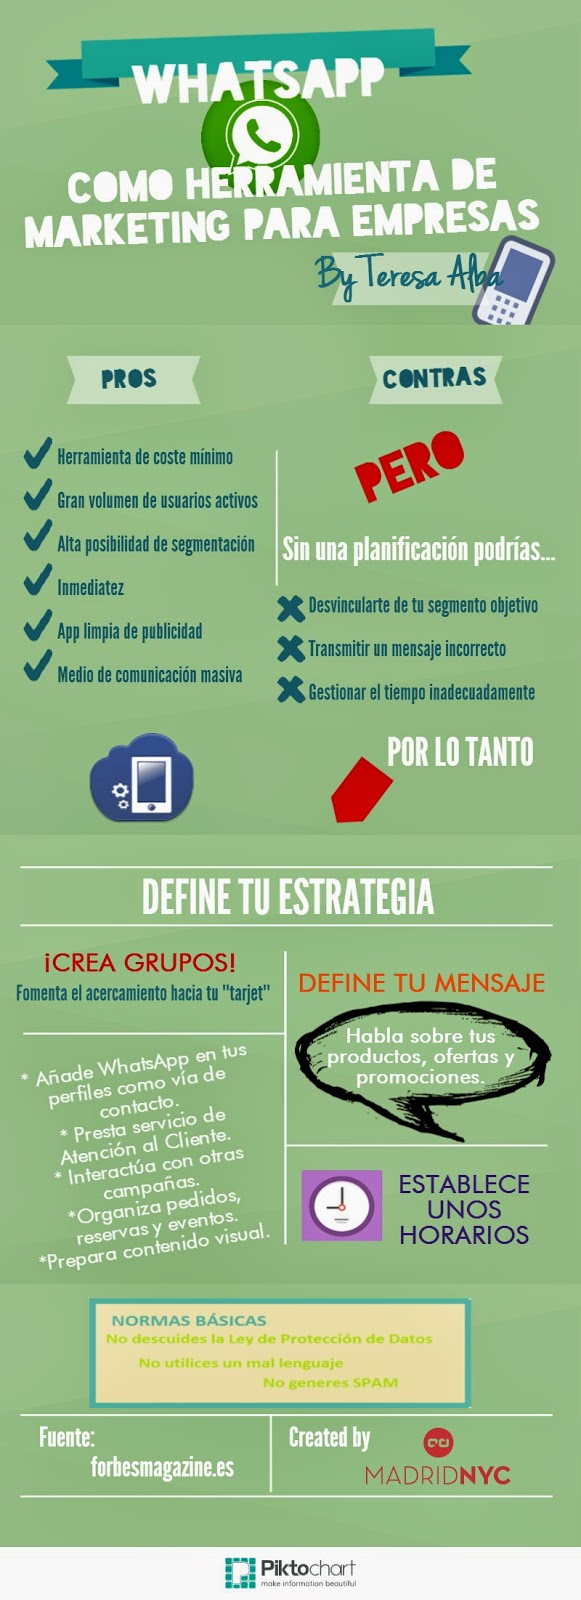 WhatsApp como herramienta de Marketing para empresas-Infografía